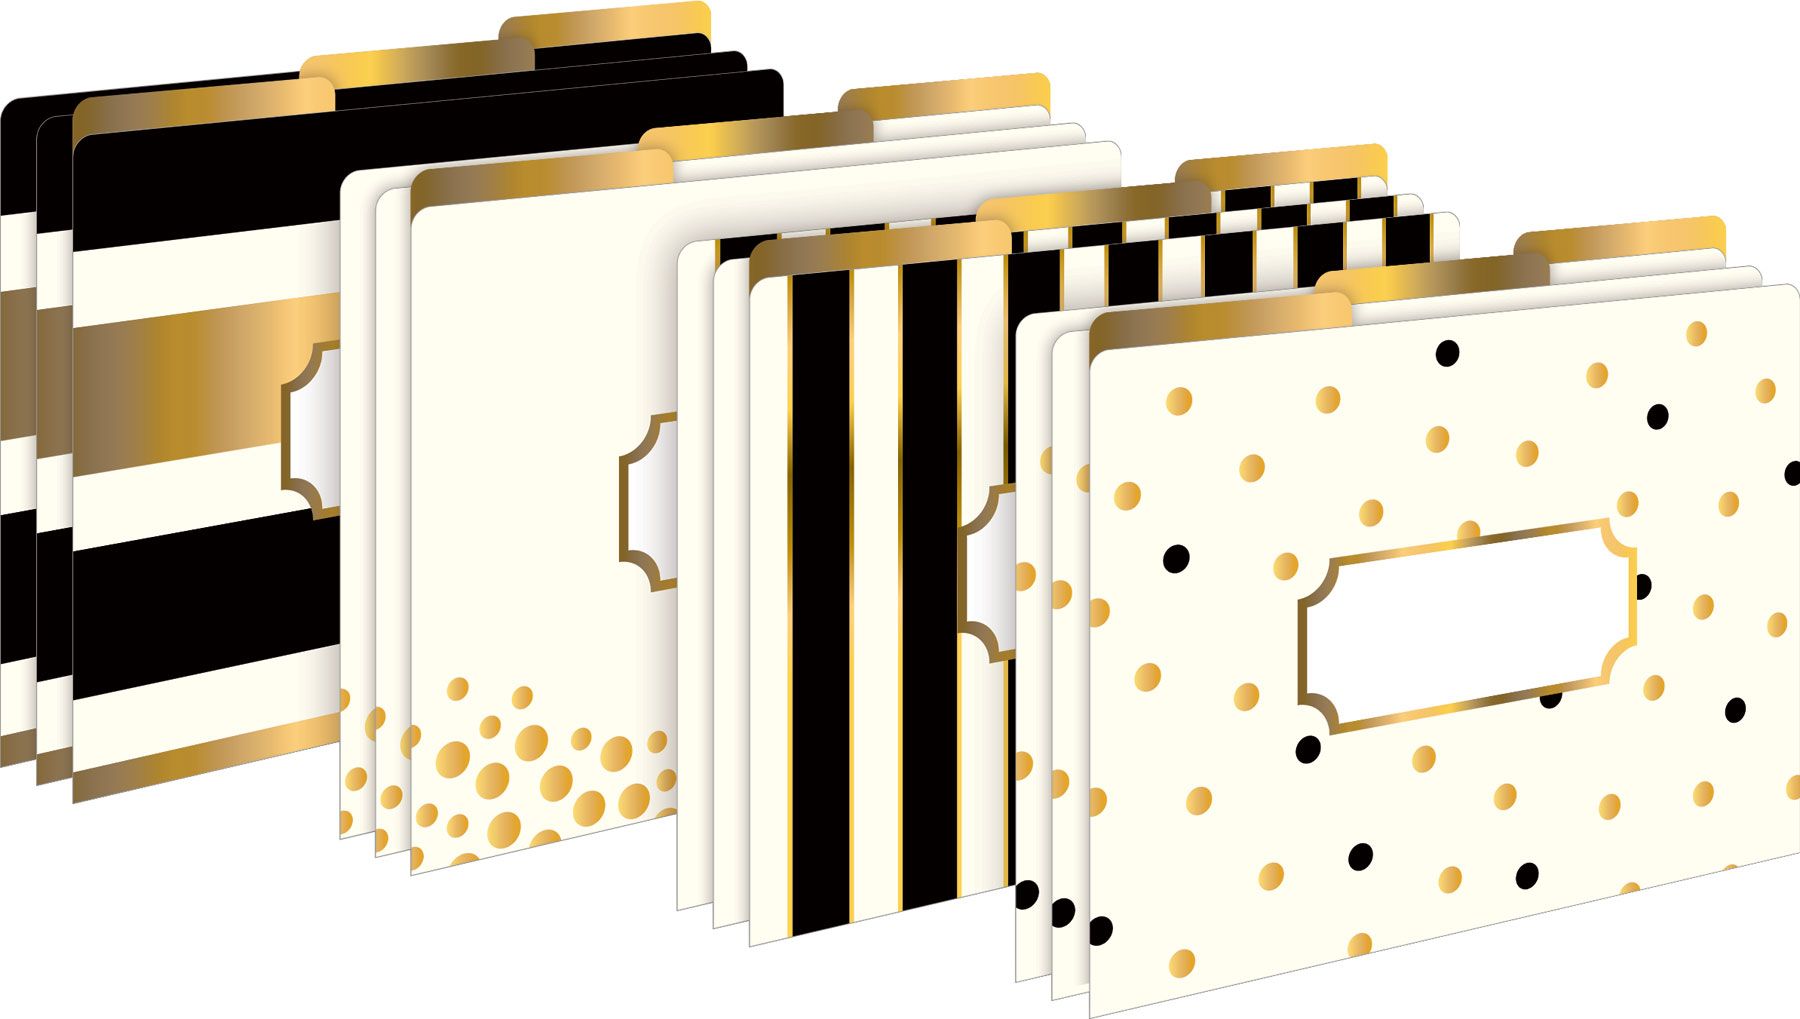 24k Gold Letter-Sized File Folders - Set of 12 by Barker Creek Publishing, Inc.